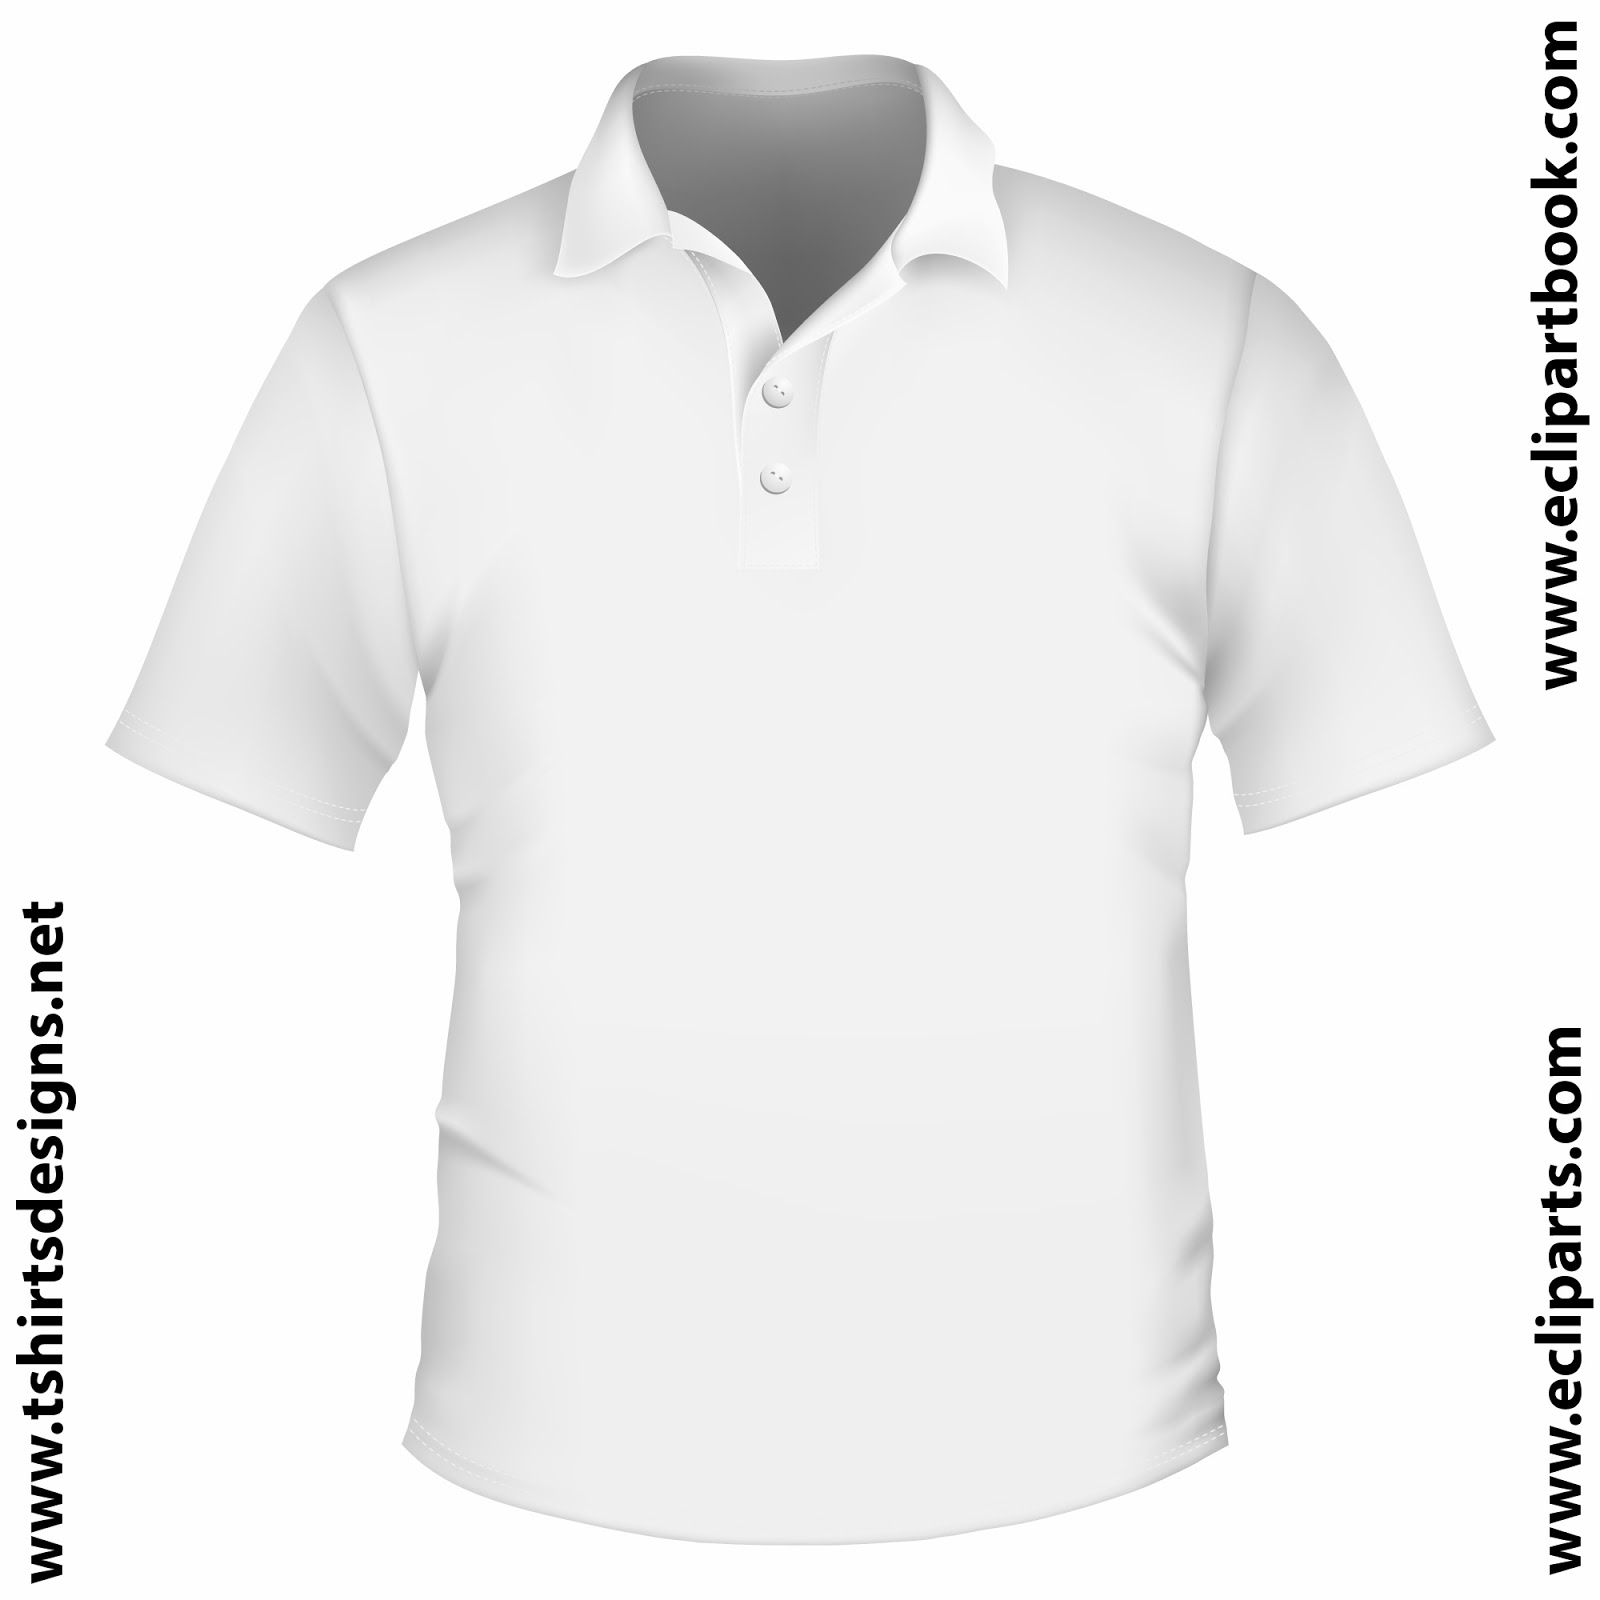 Buy plain white polo shirt front and back - 50% OFF!